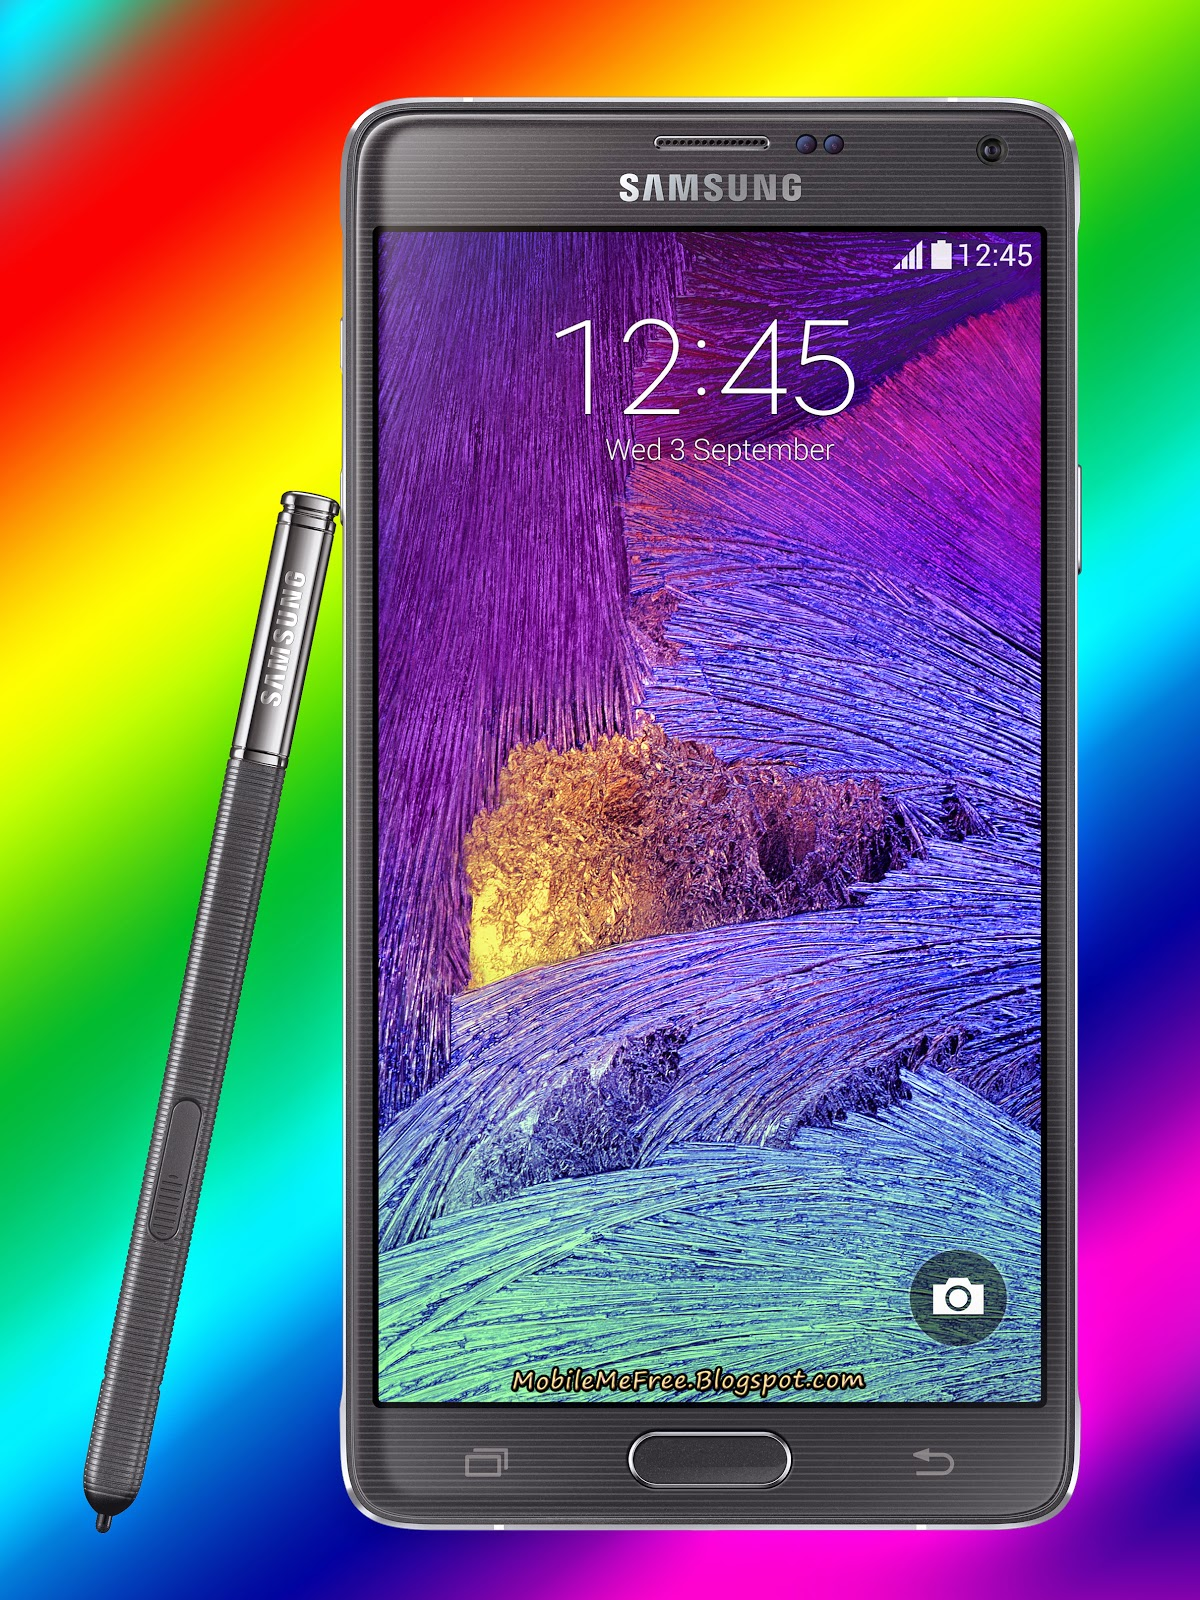 note 4 N910C full features and specifications